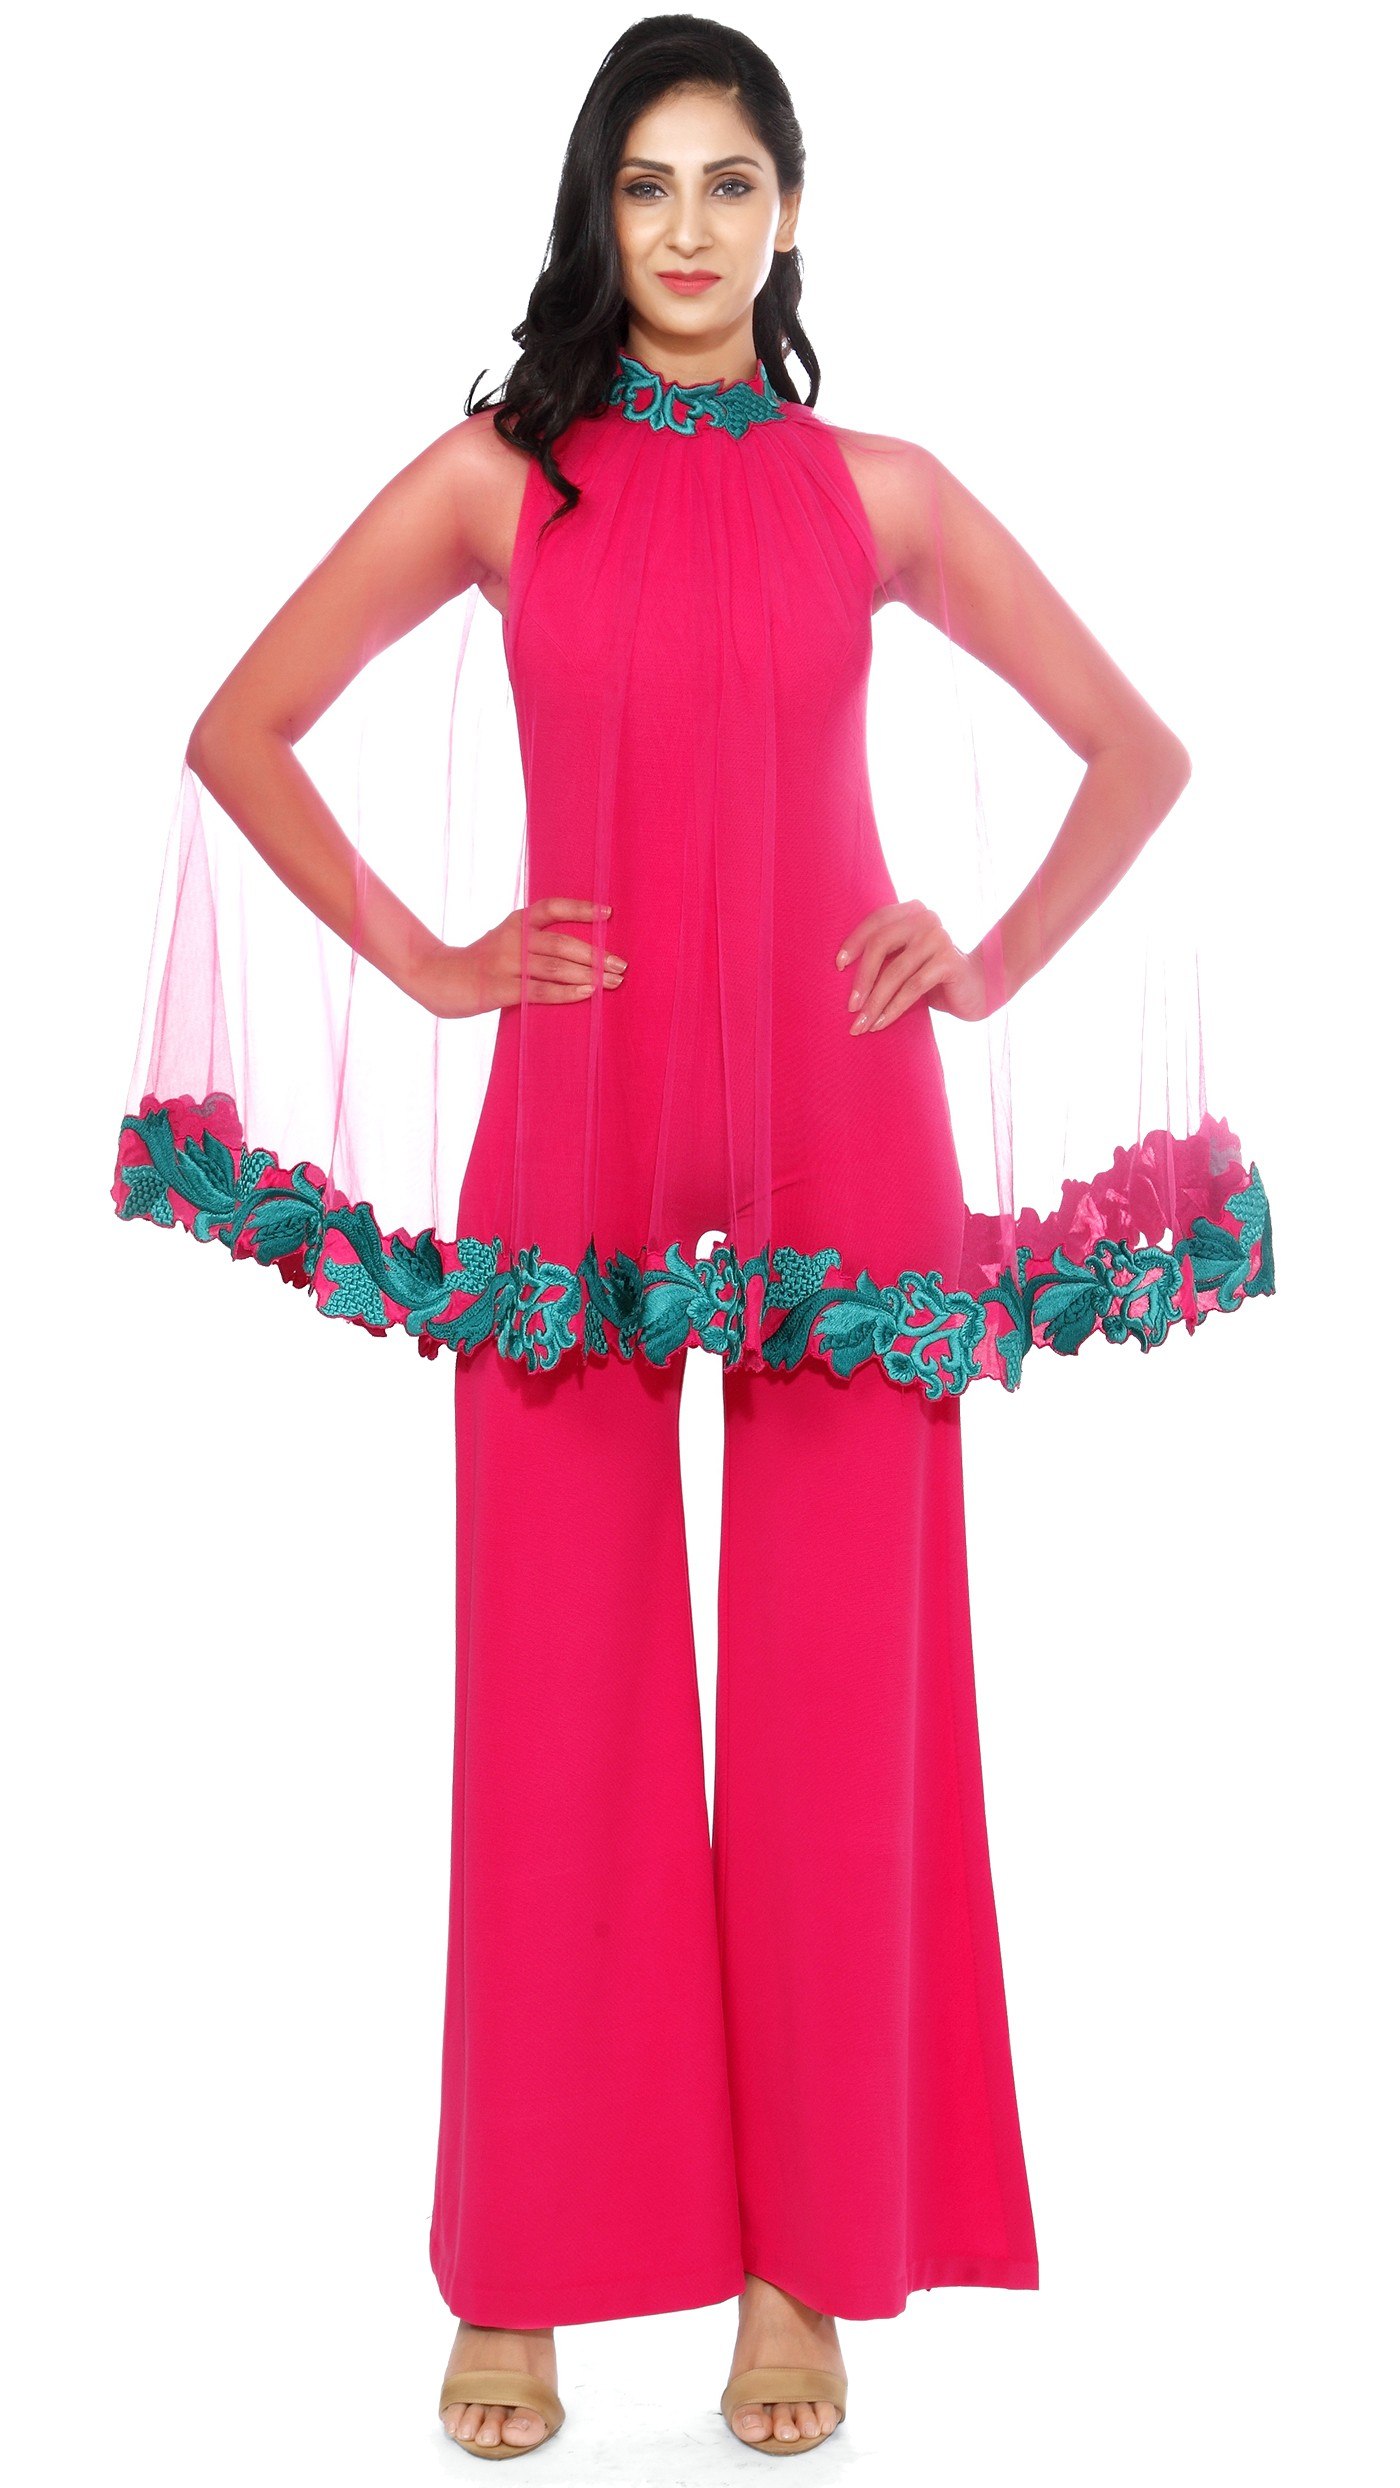 5a08e04b7375 Mayyur Girotra s Hot Pink Jumpsuit and Cape